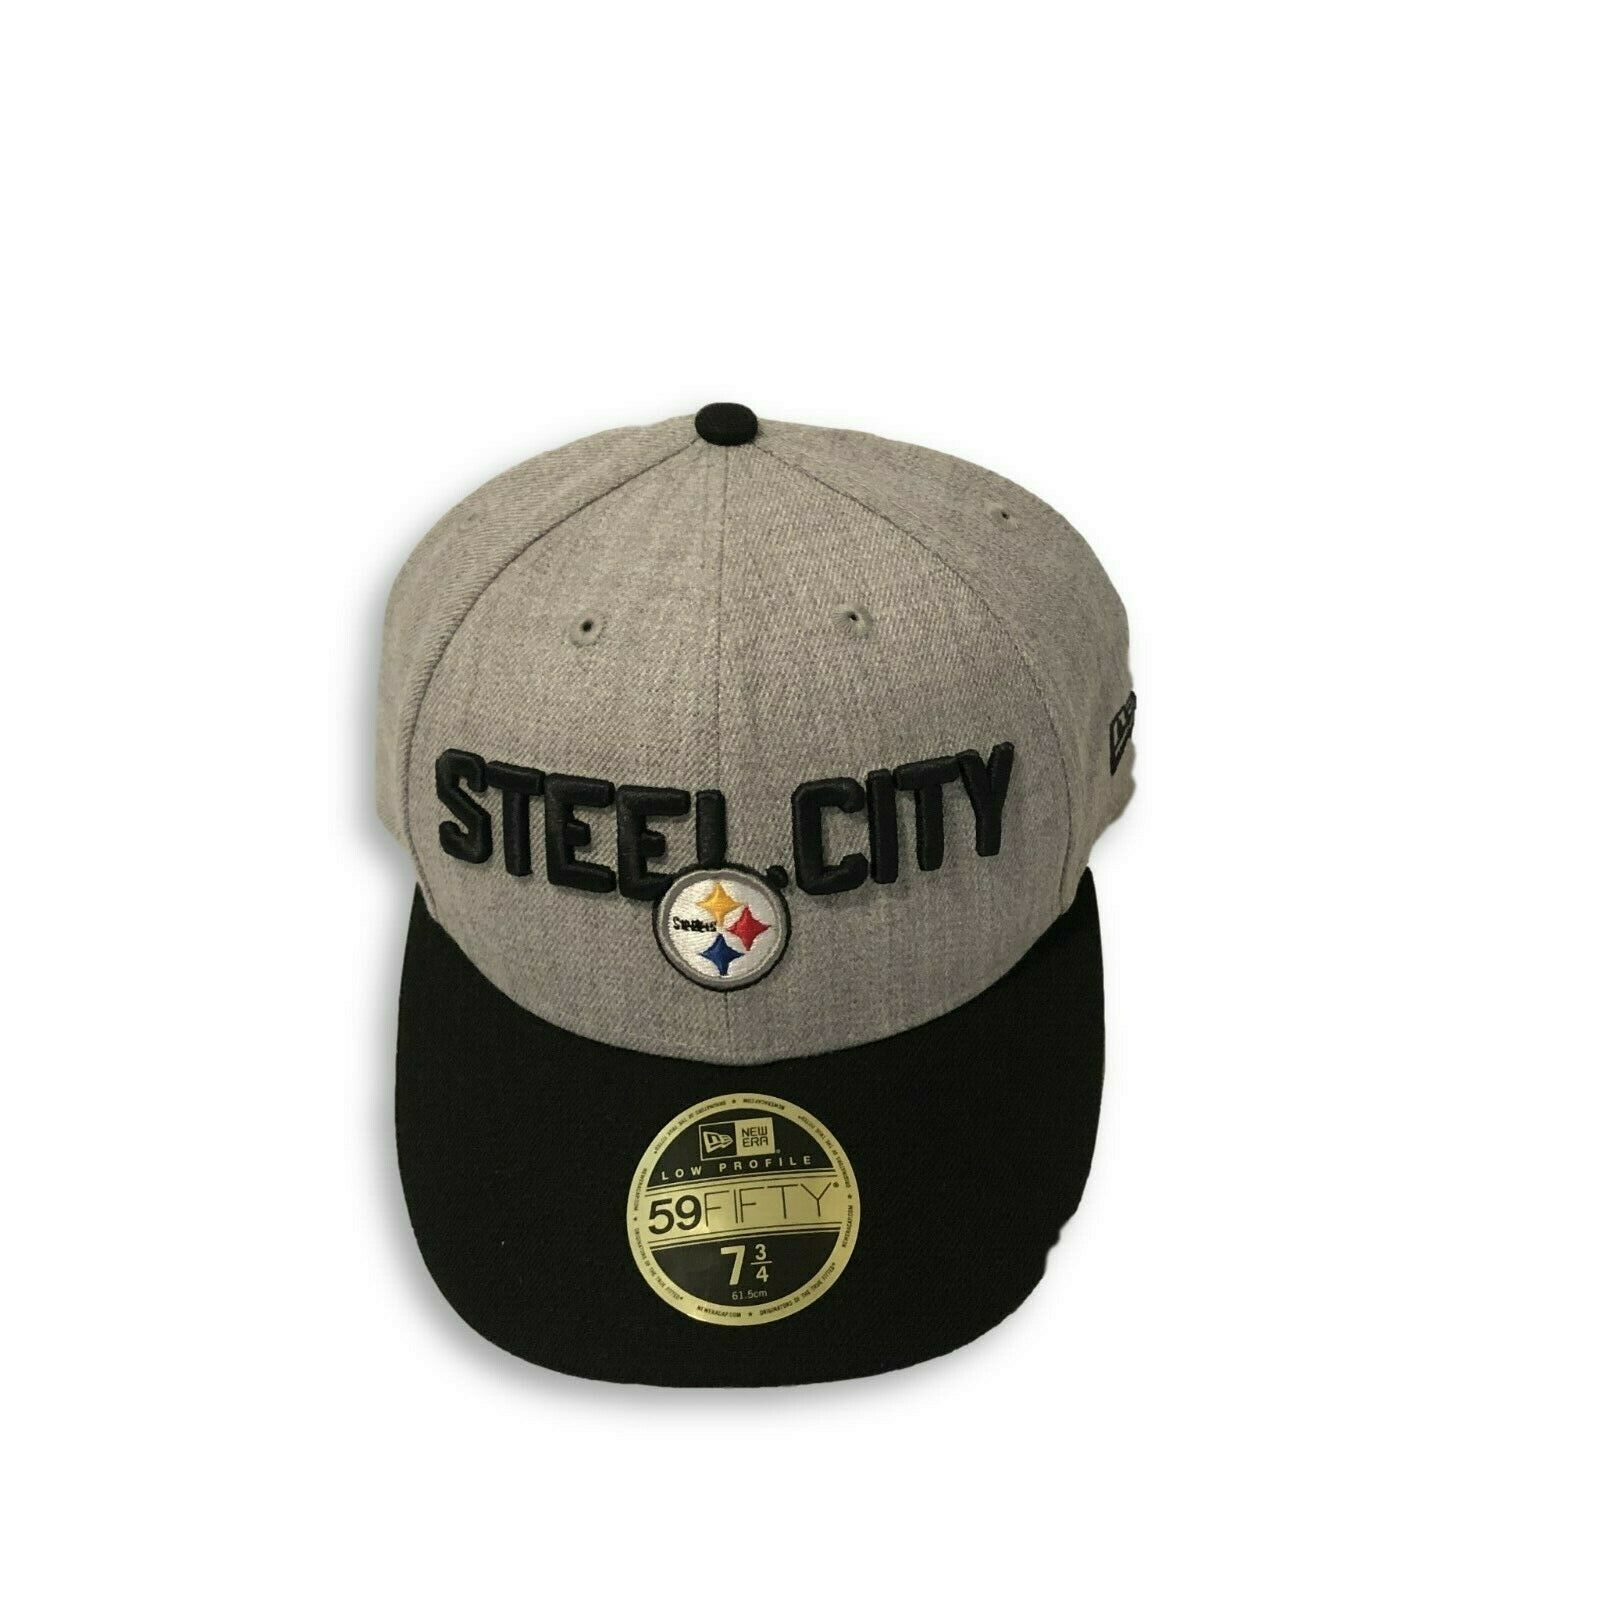 NWT New Pittsburgh Steelers New Era 59Fifty Low Profile Draft Size 7 3/4 Hat